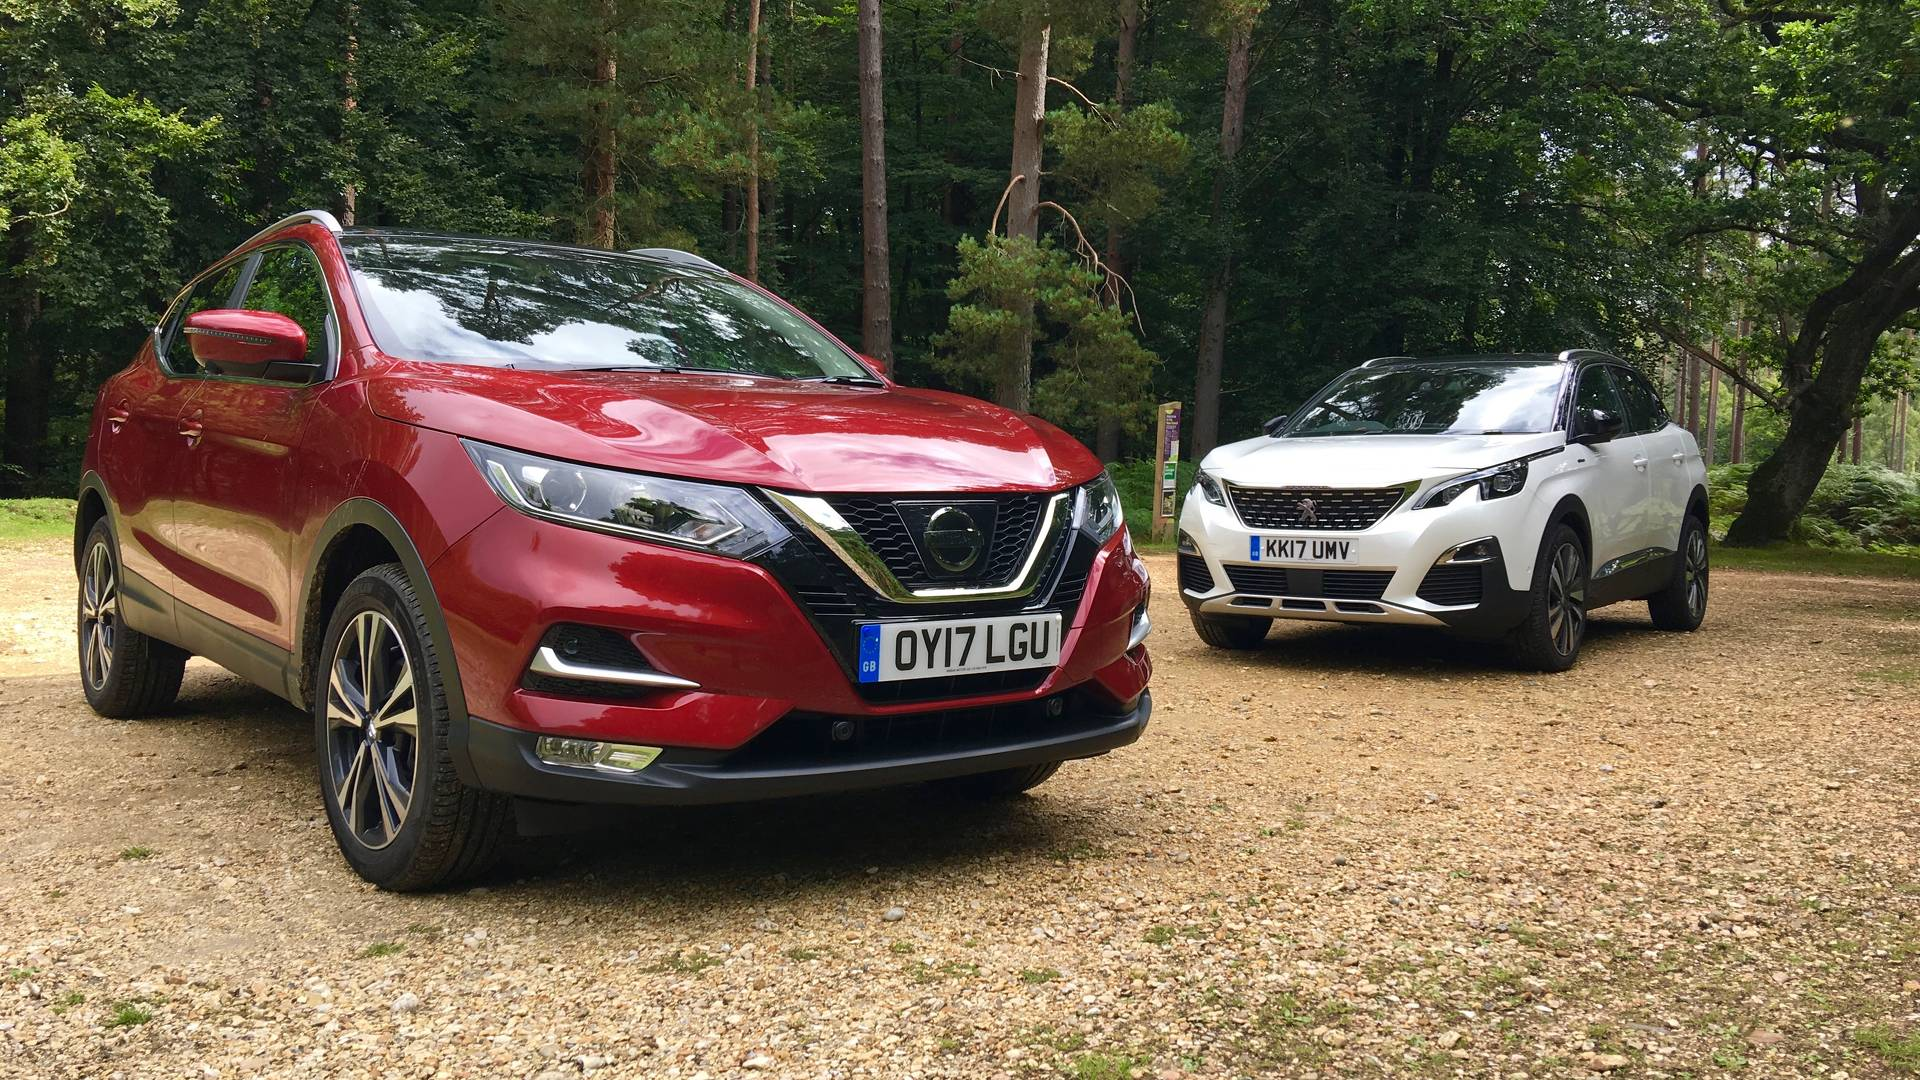 Peugeot 3008 Suv Vs Nissan Qashqai Where Should Your Money Go